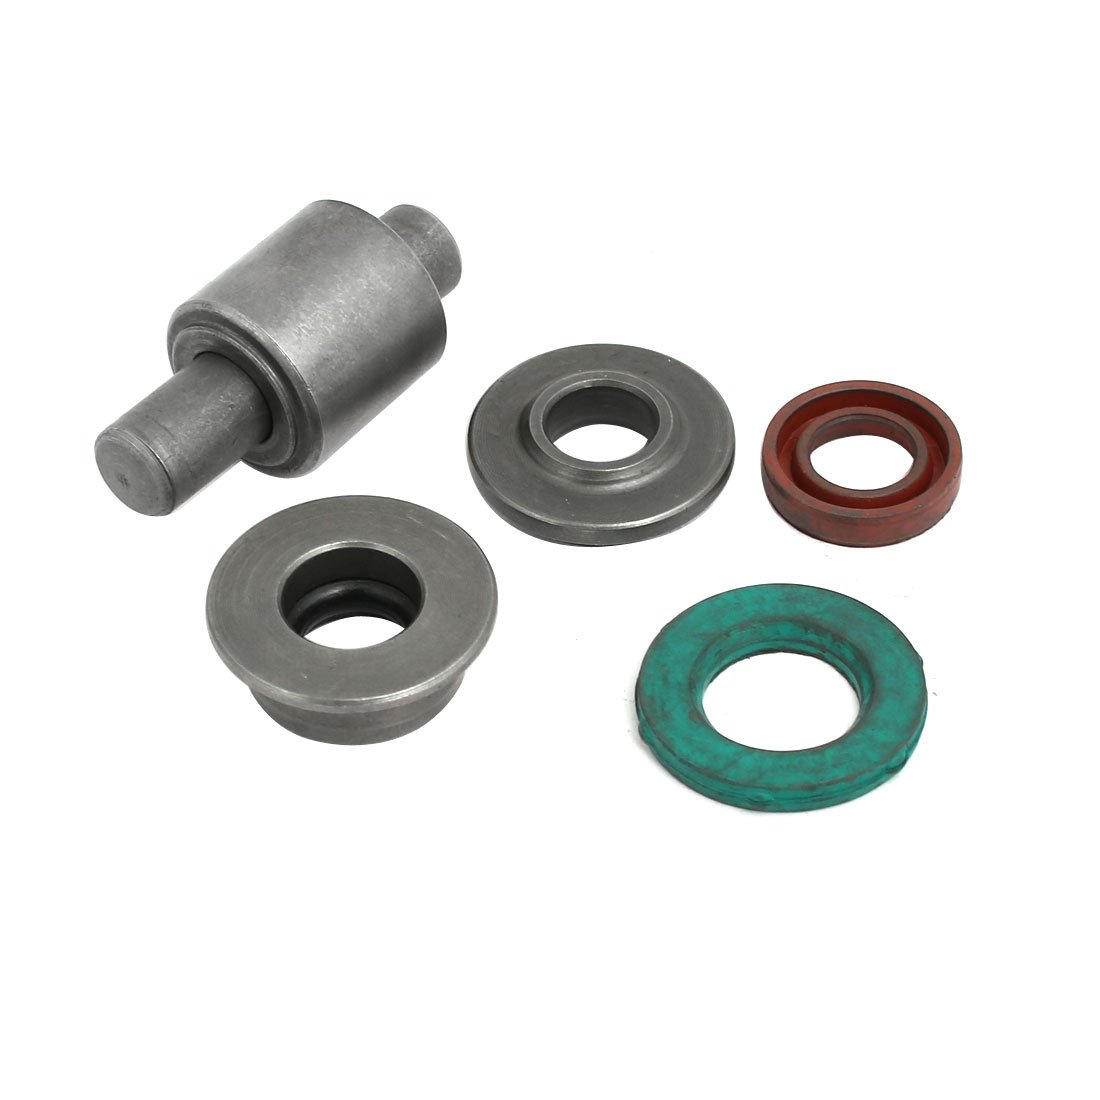 uxcell Power Tool Fittings Rotary Hammer Drill Parts for Makita HR2470F